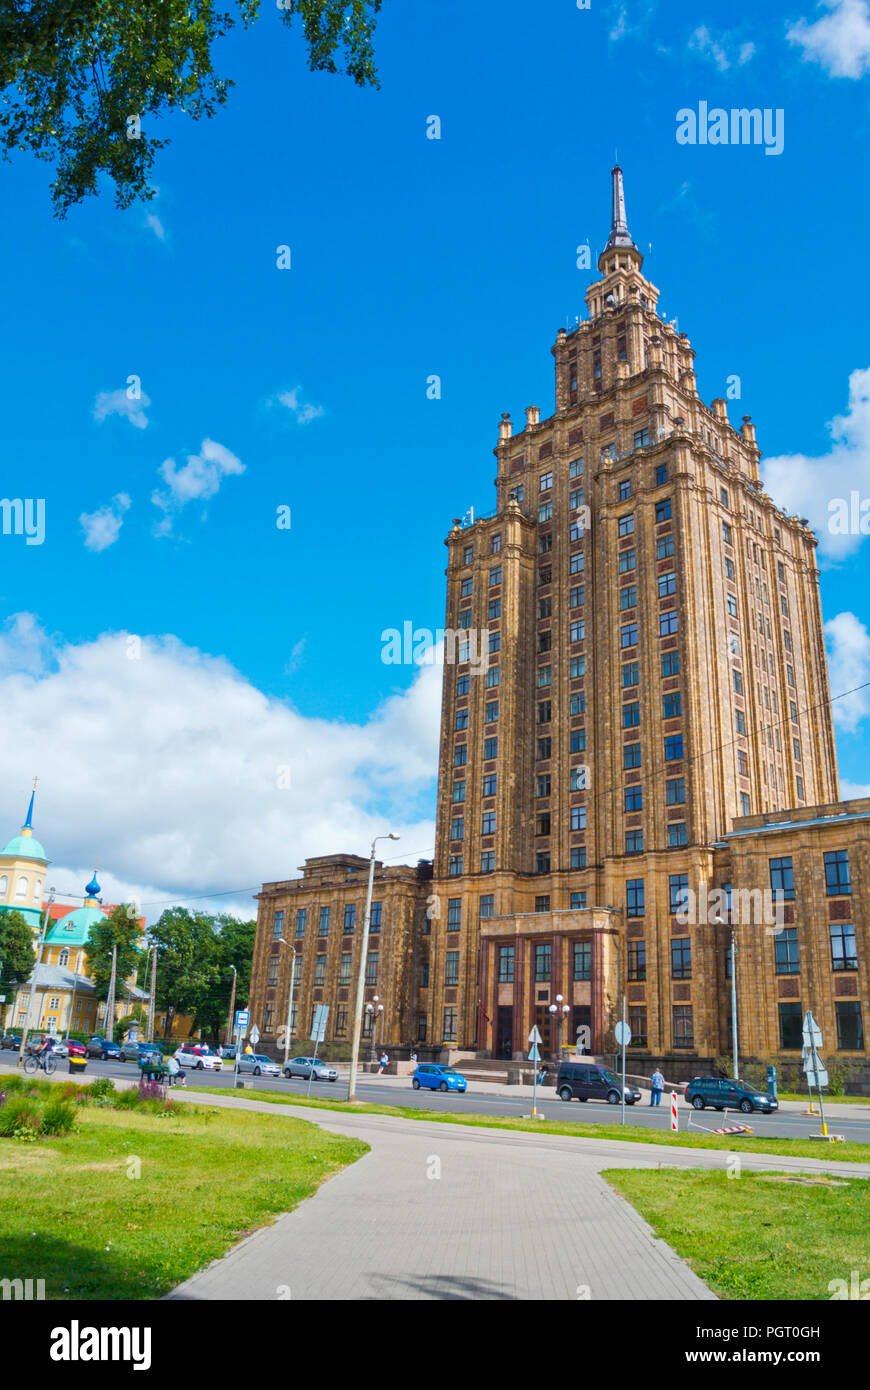 Latvian Academy of Sciences, LZA panorama, Riga, Latvia - Stock Image